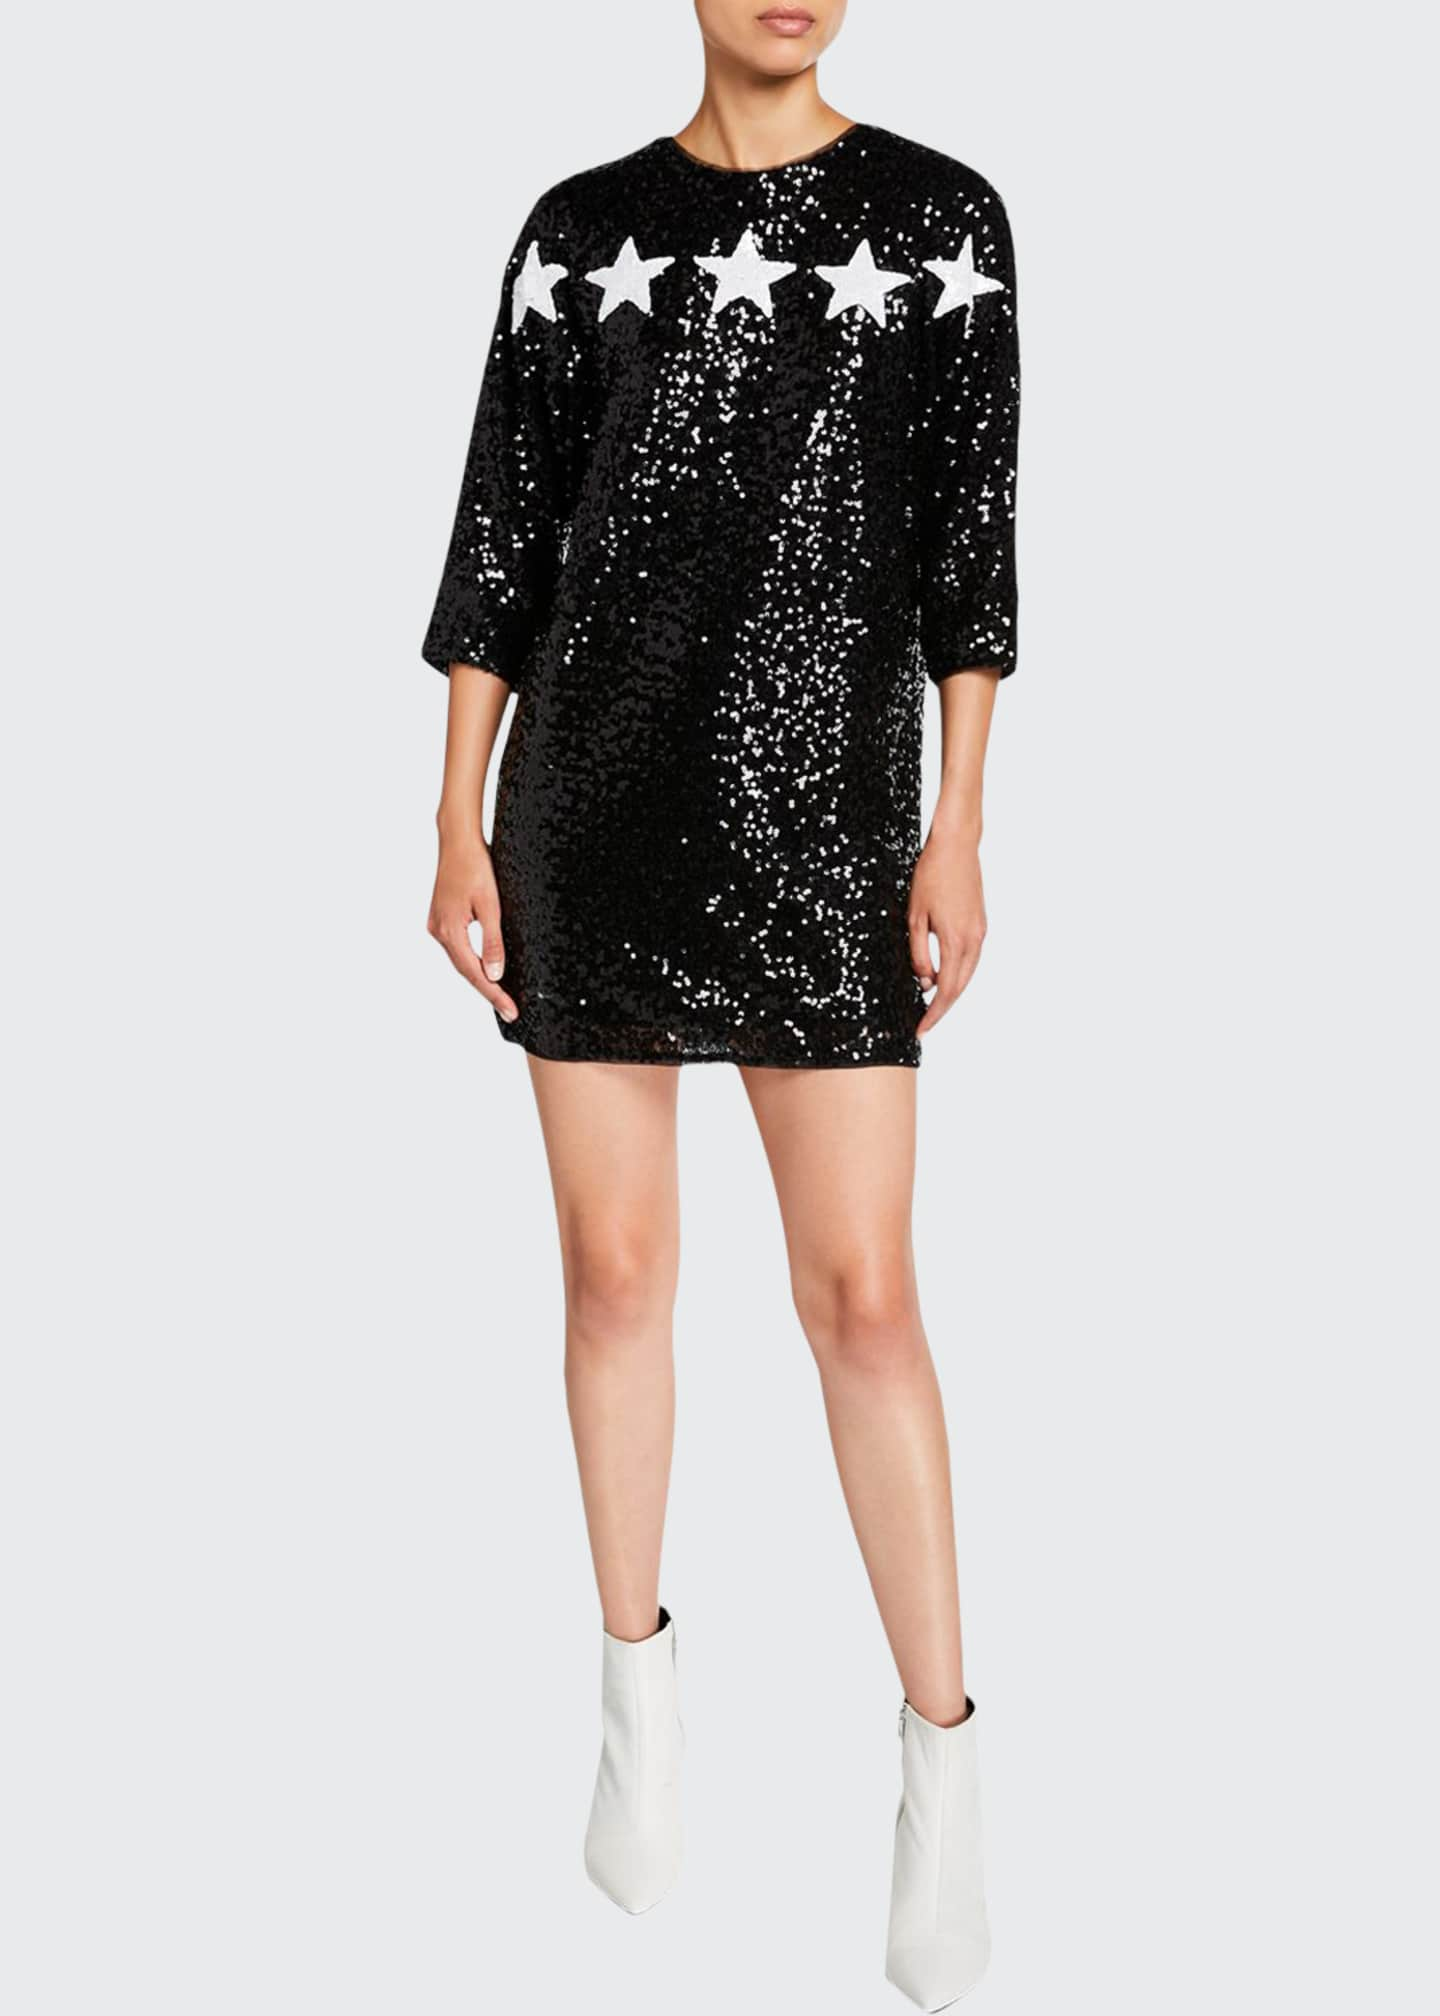 Aidan by Aidan Mattox Star Applique 3/4-Sleeve Sequin